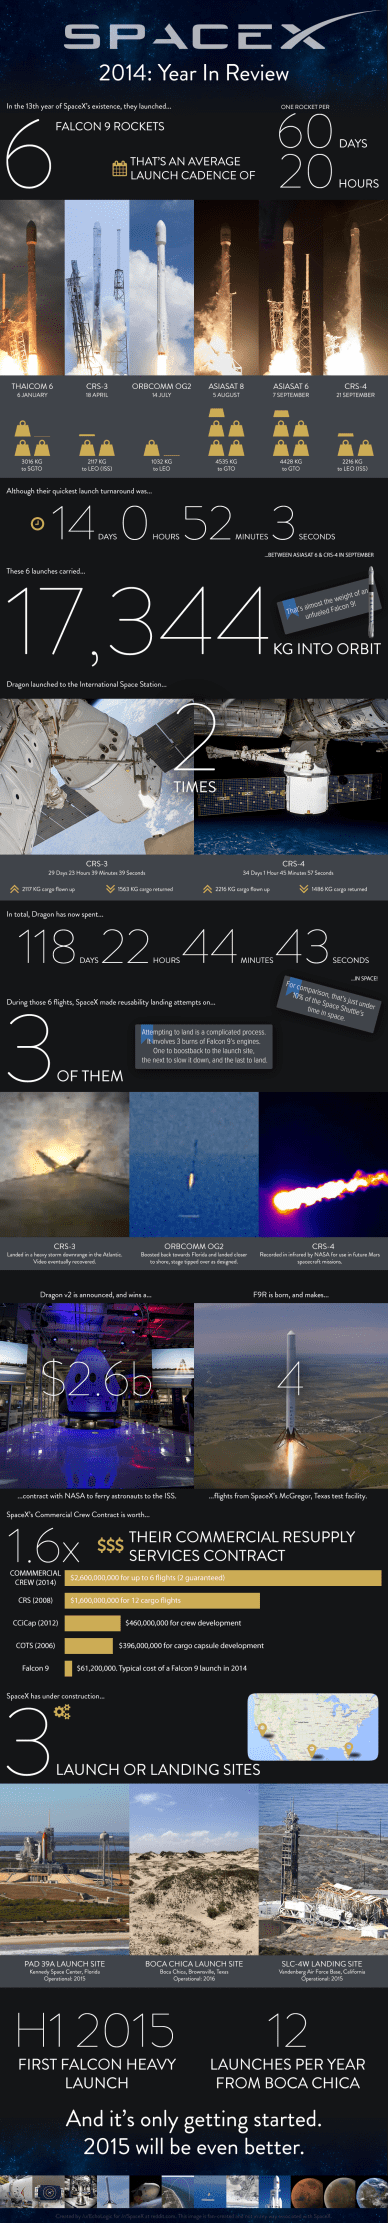 info_spaceX_2014